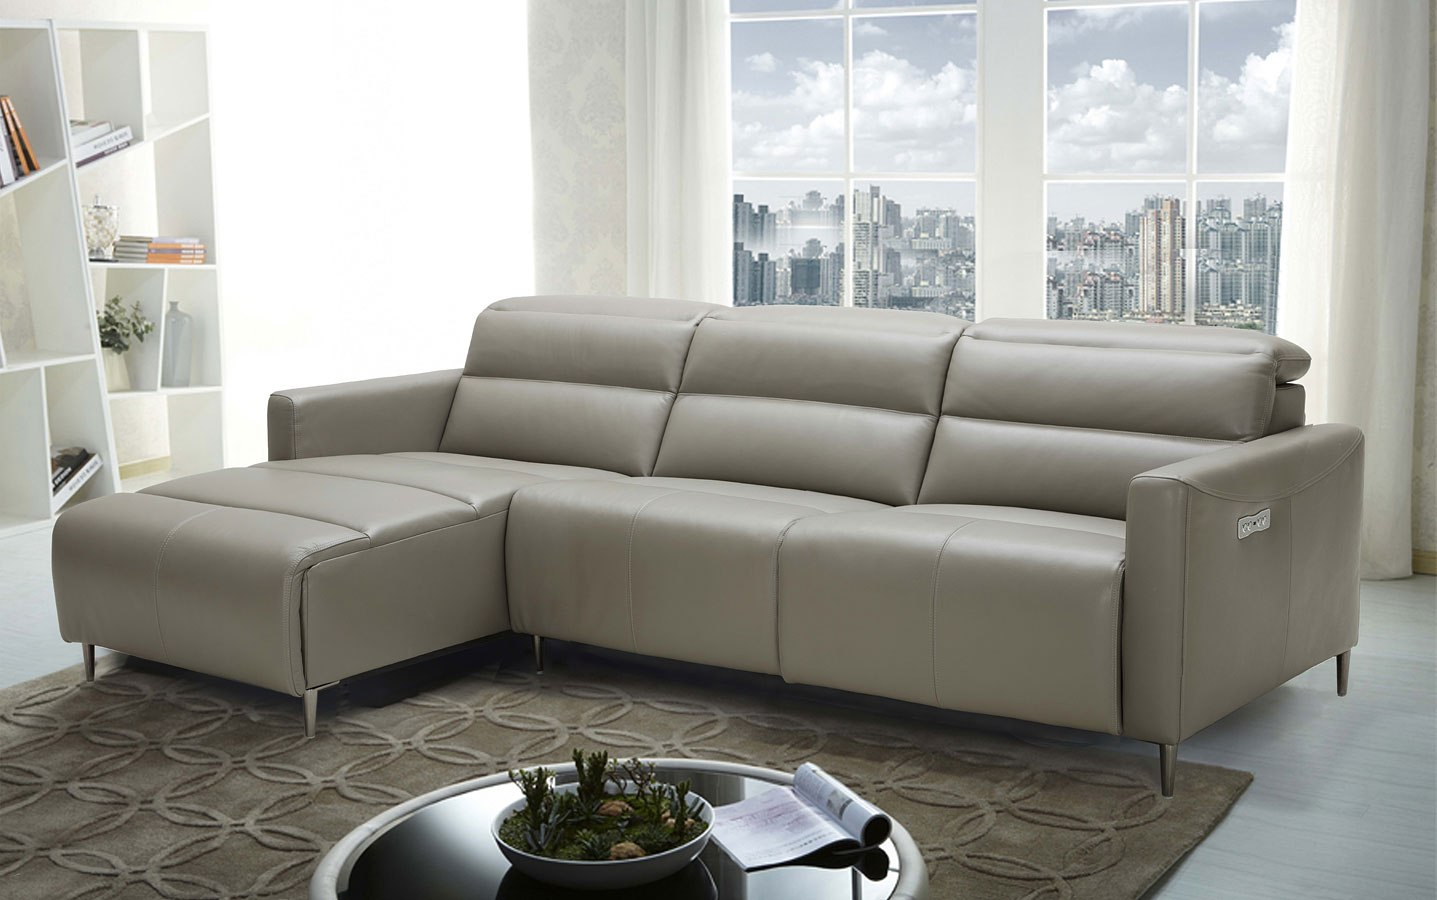 Dylan Left Chaise Sectional Jm Furniture | Furniture Cart Regarding Copenhagen Reclining Sectional Sofas With Left Storage Chaise (View 5 of 15)